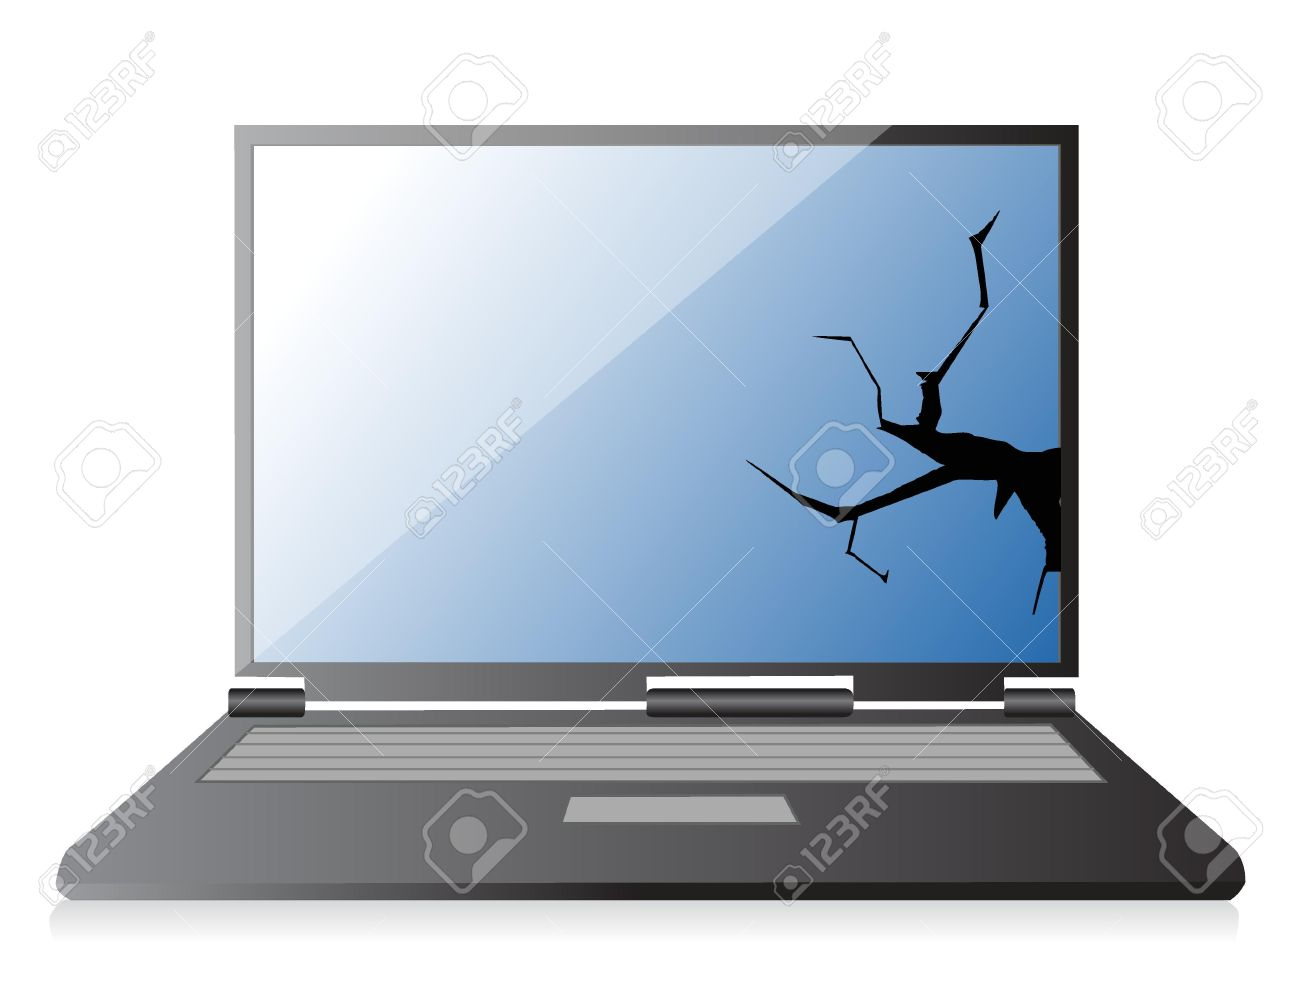 hight resolution of 1 386 broken laptop stock illustrations cliparts and royalty free